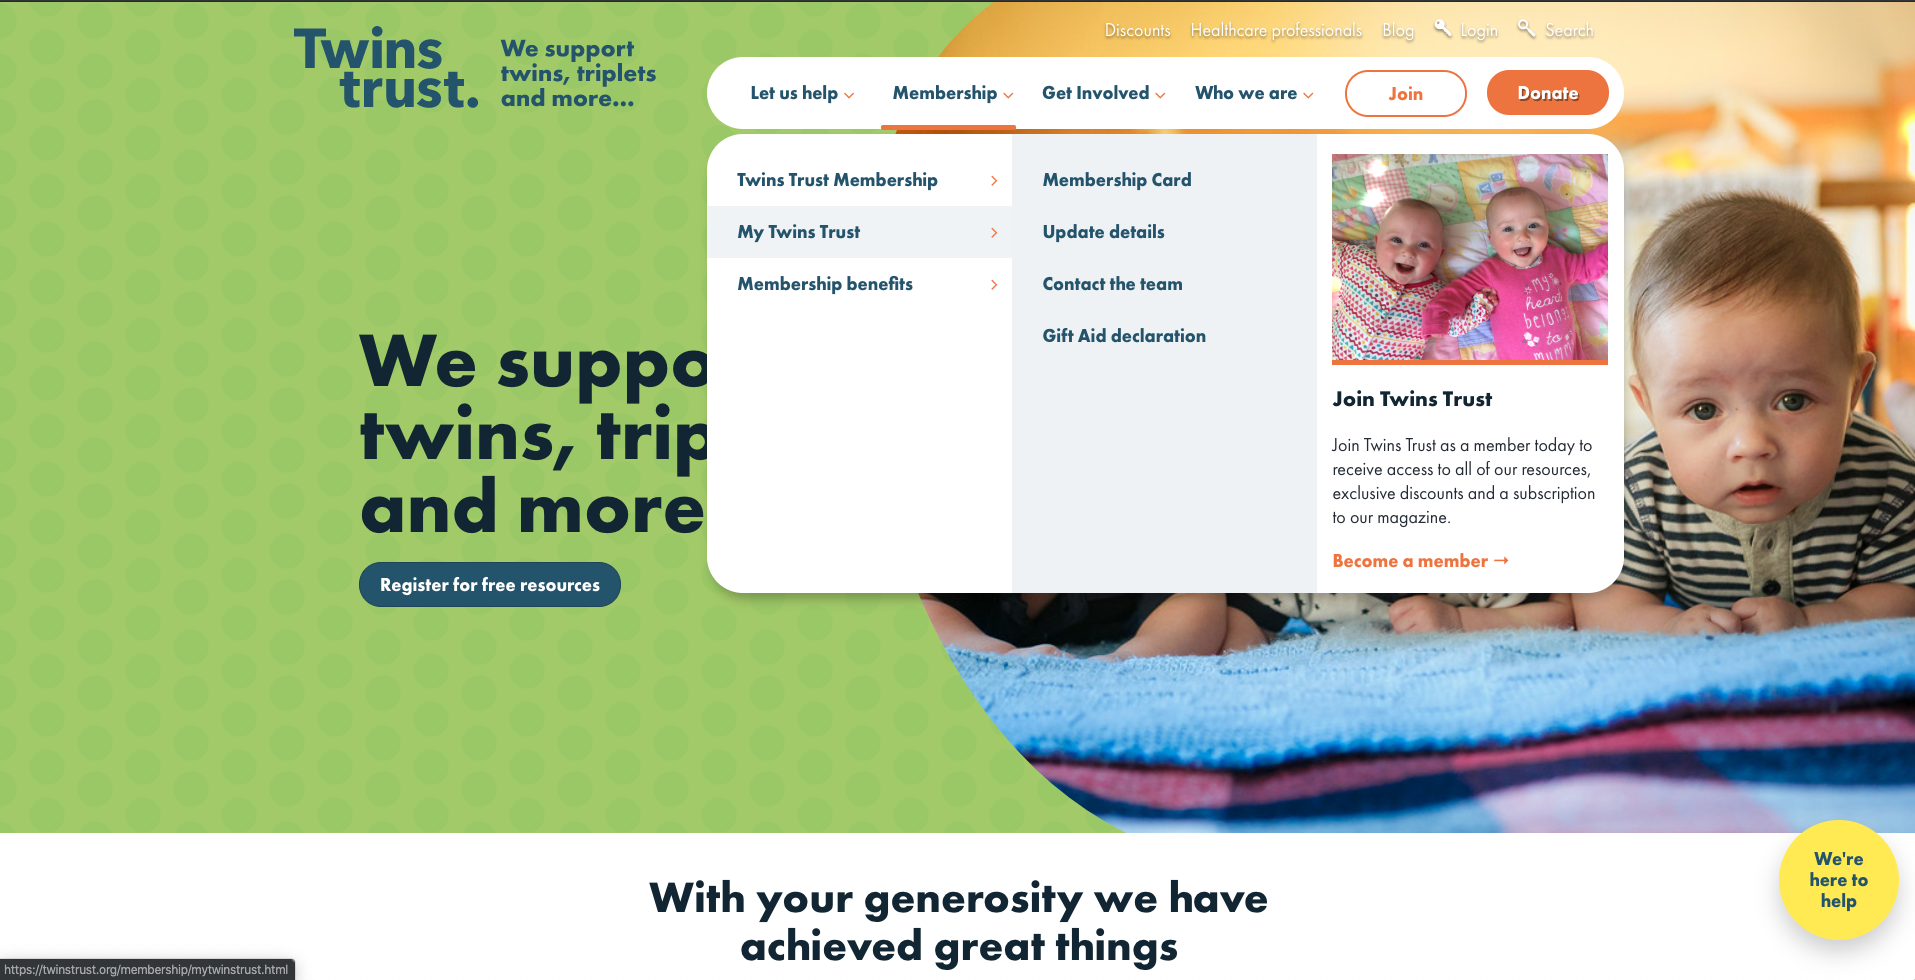 Image showing a screenshot of the Twins Trust homepage